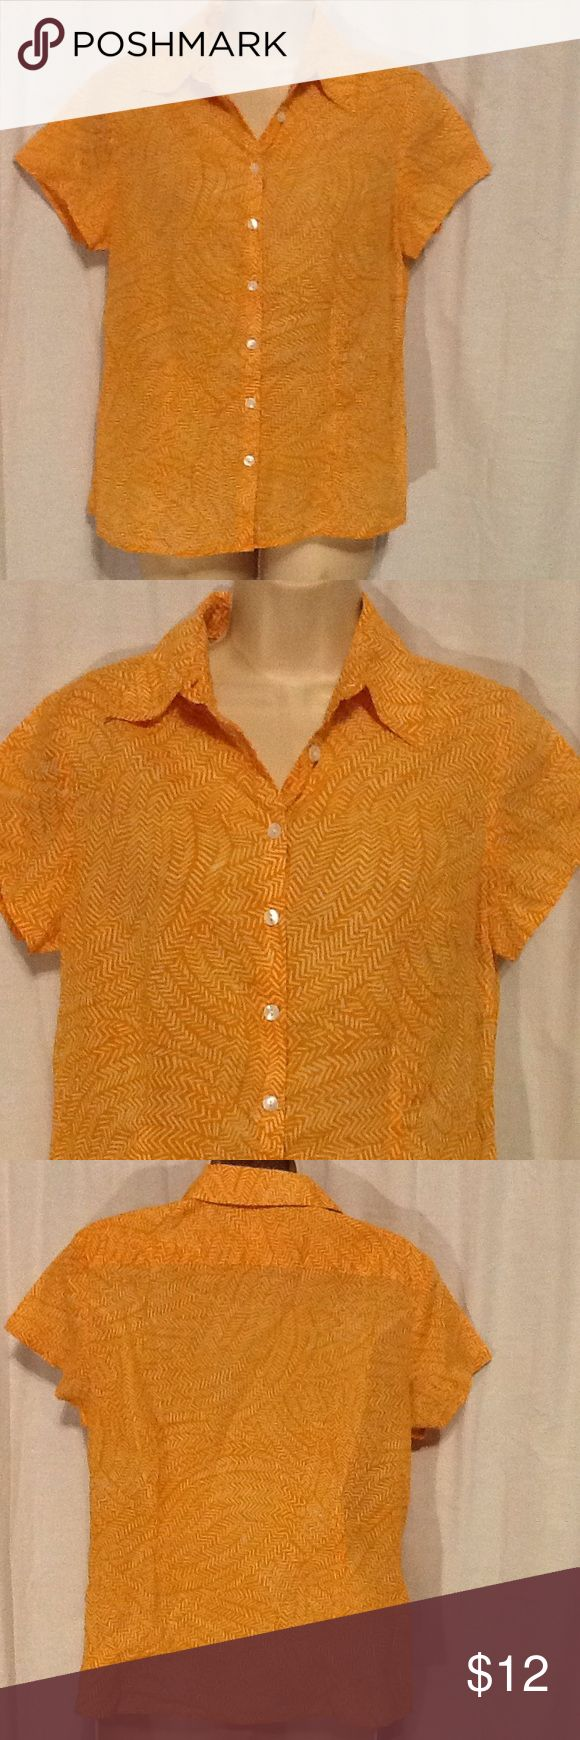 """Coldwater Creek Orange Short Sleeve Top S 6-8 Excellent used condition. Button front. Short sleeve. 100% cotton. Bust is 38"""". Length is 24"""". Posh10. W1D2. Coldwater Creek Tops Blouses"""